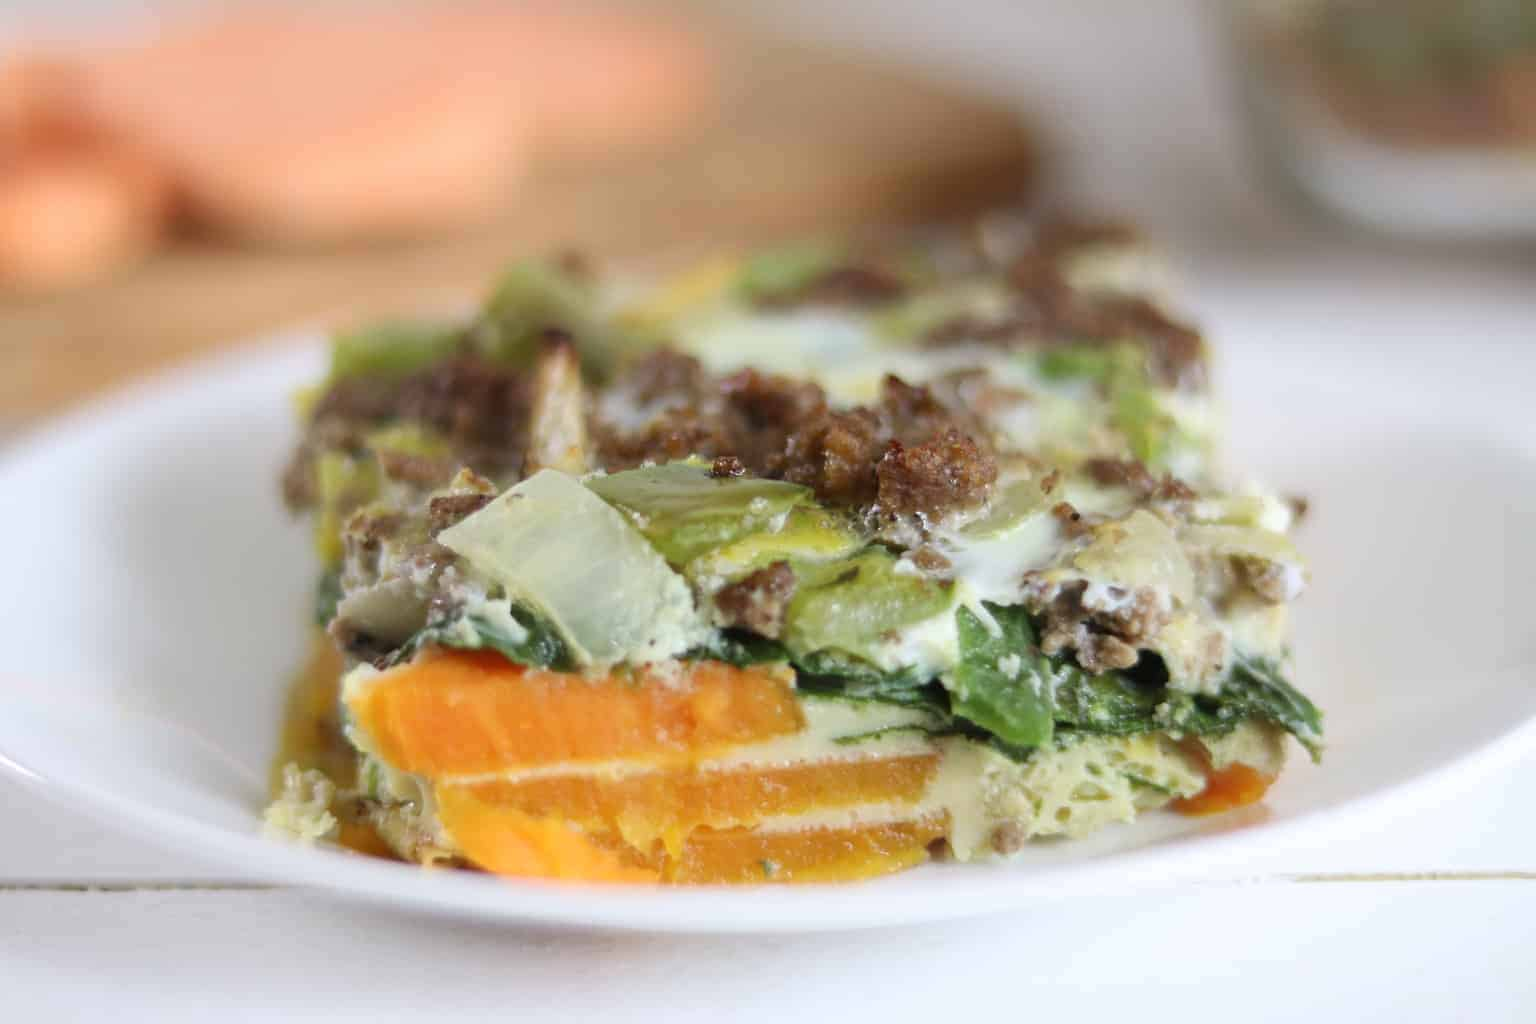 This simple sweet potato egg casserole is whole 30 and paleo friendly. It will make the perfect dish for a healthy brunch.